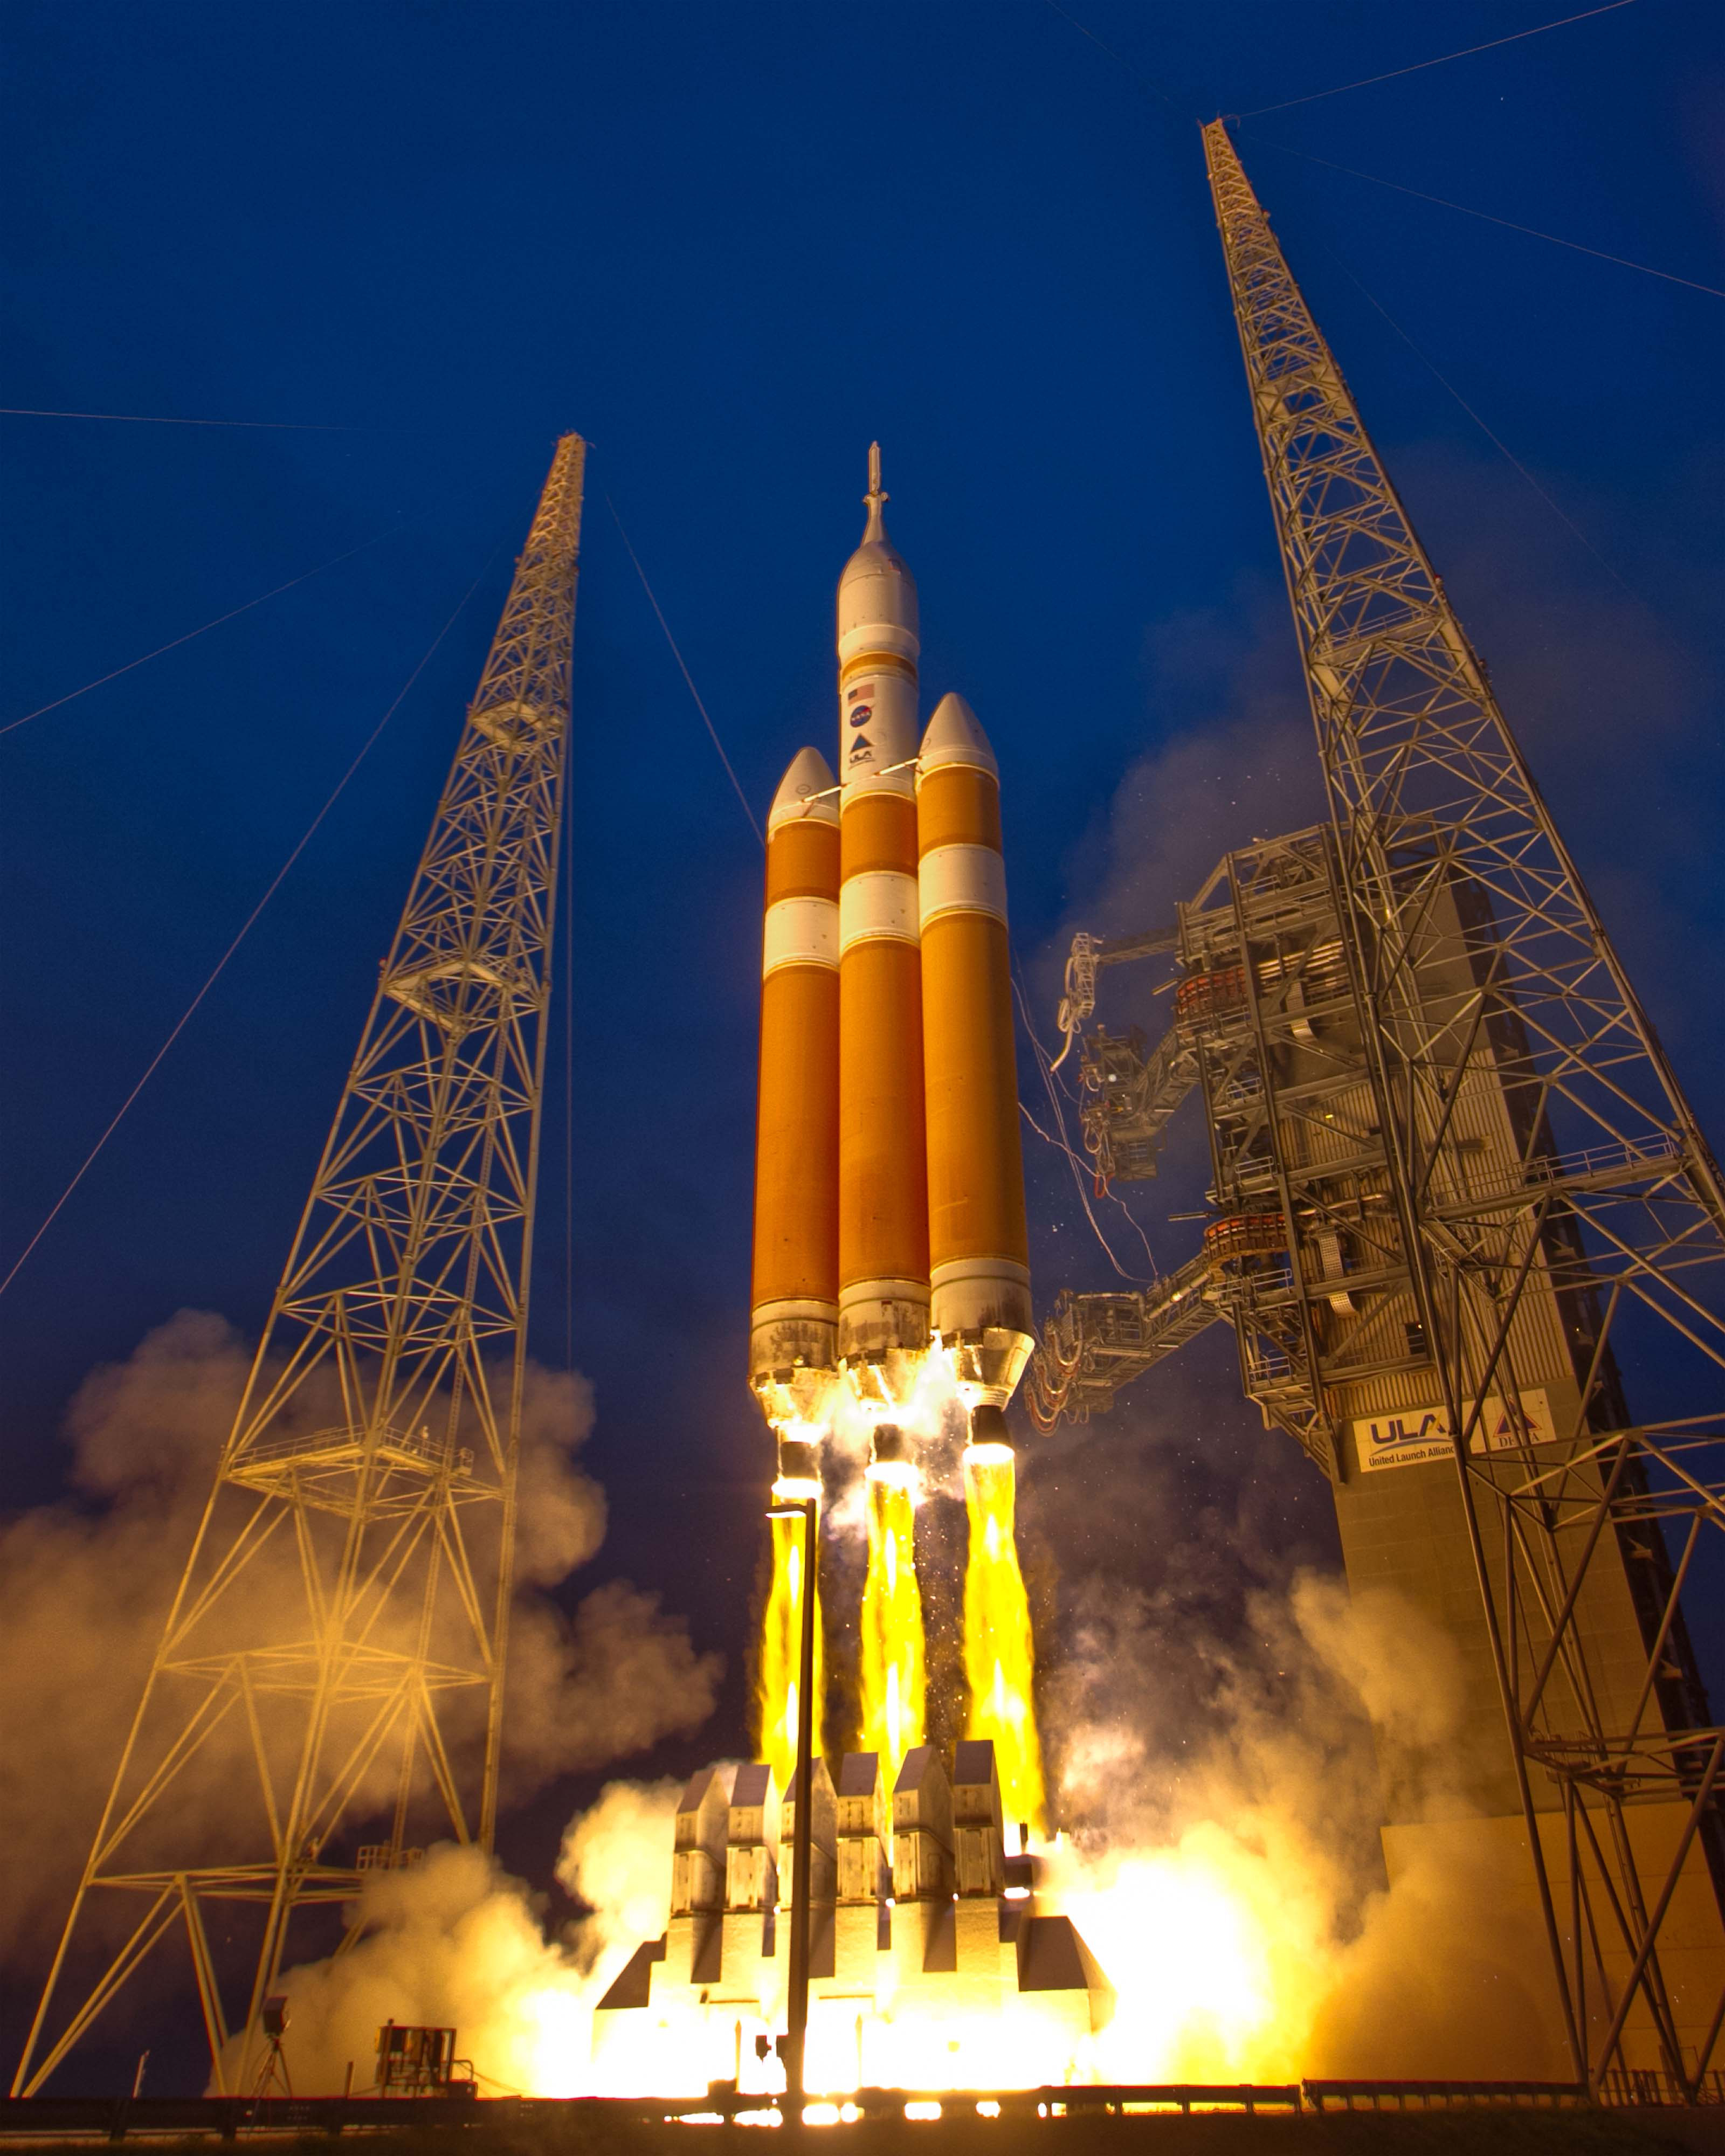 Photos: One more look at Orion's launch – Spaceflight Now